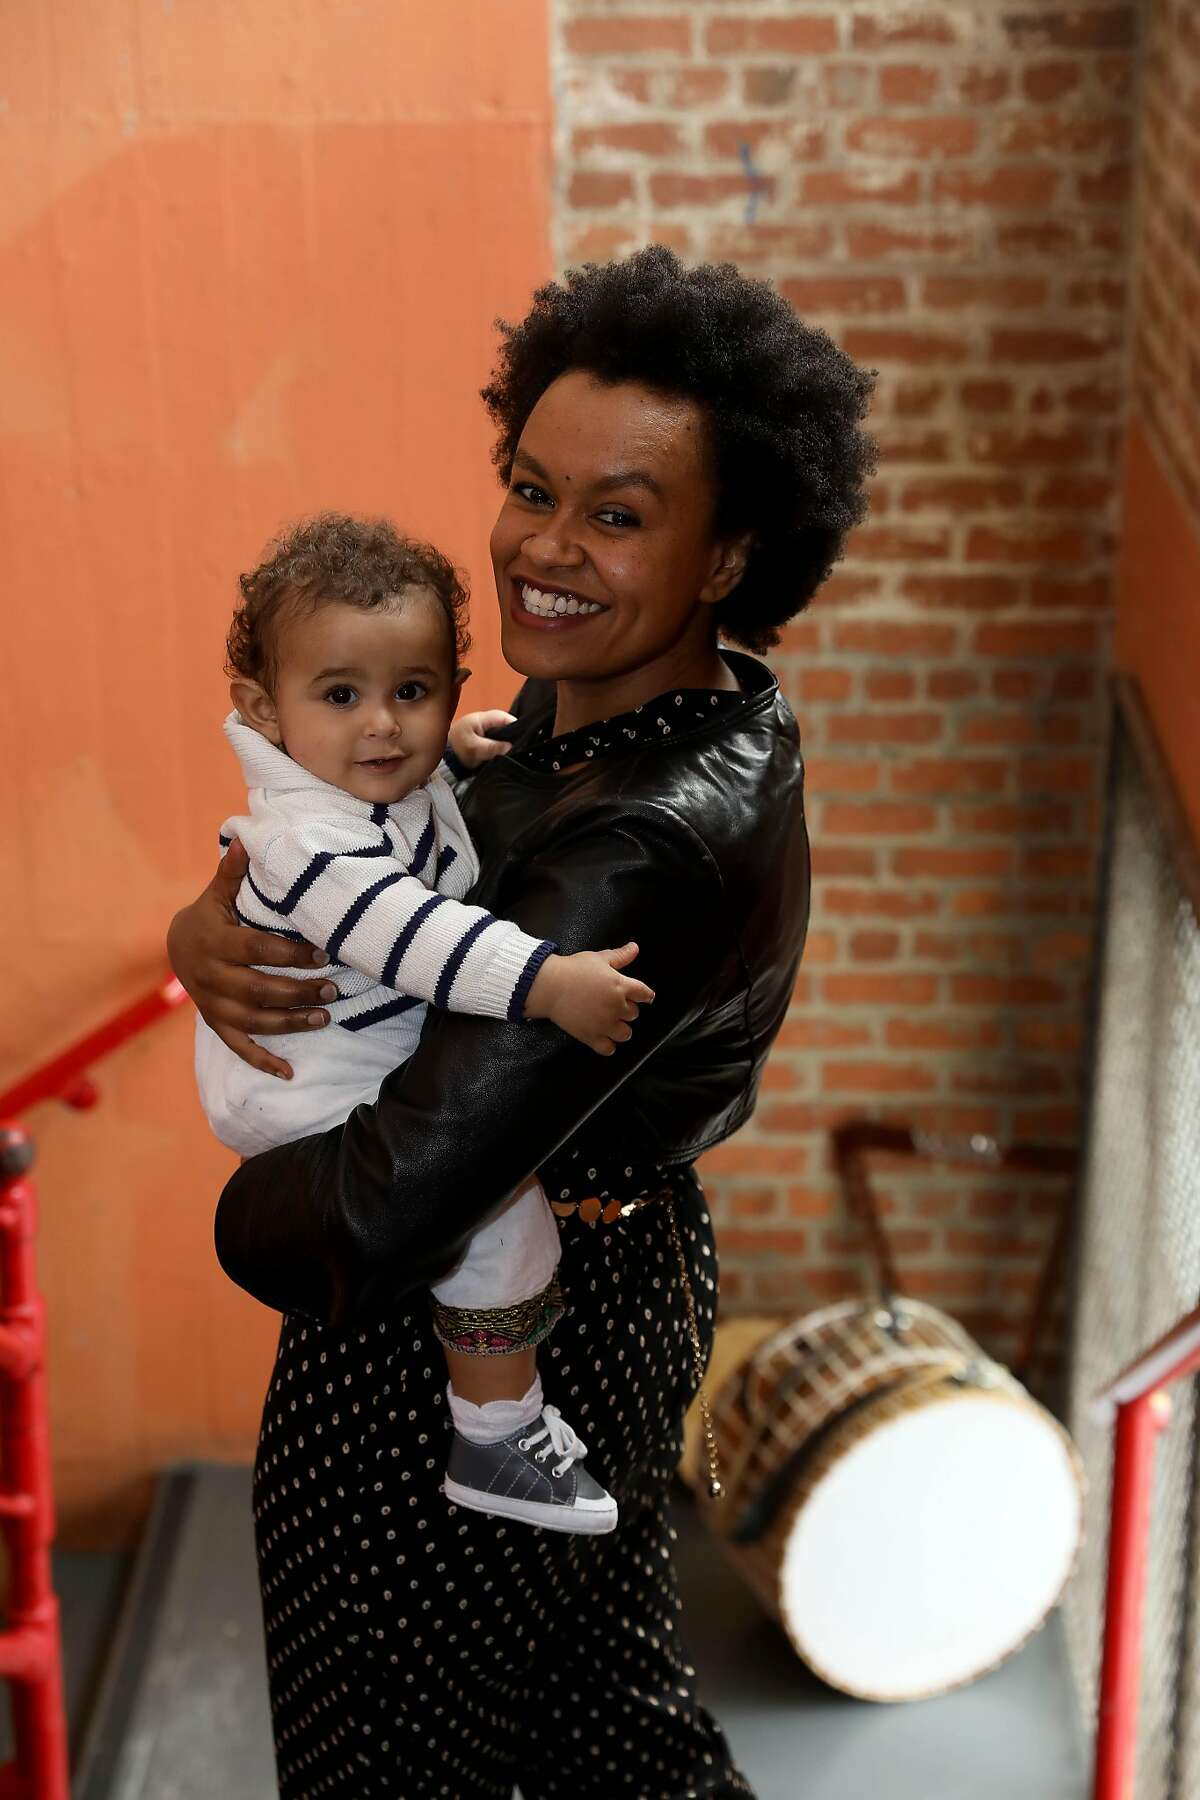 Meklit Hadero poses for a portrait with 9-month-old son Le-n Hadero Peris at Project Artaud on Saturday, May 2, 2020, in San Francisco, Calif.